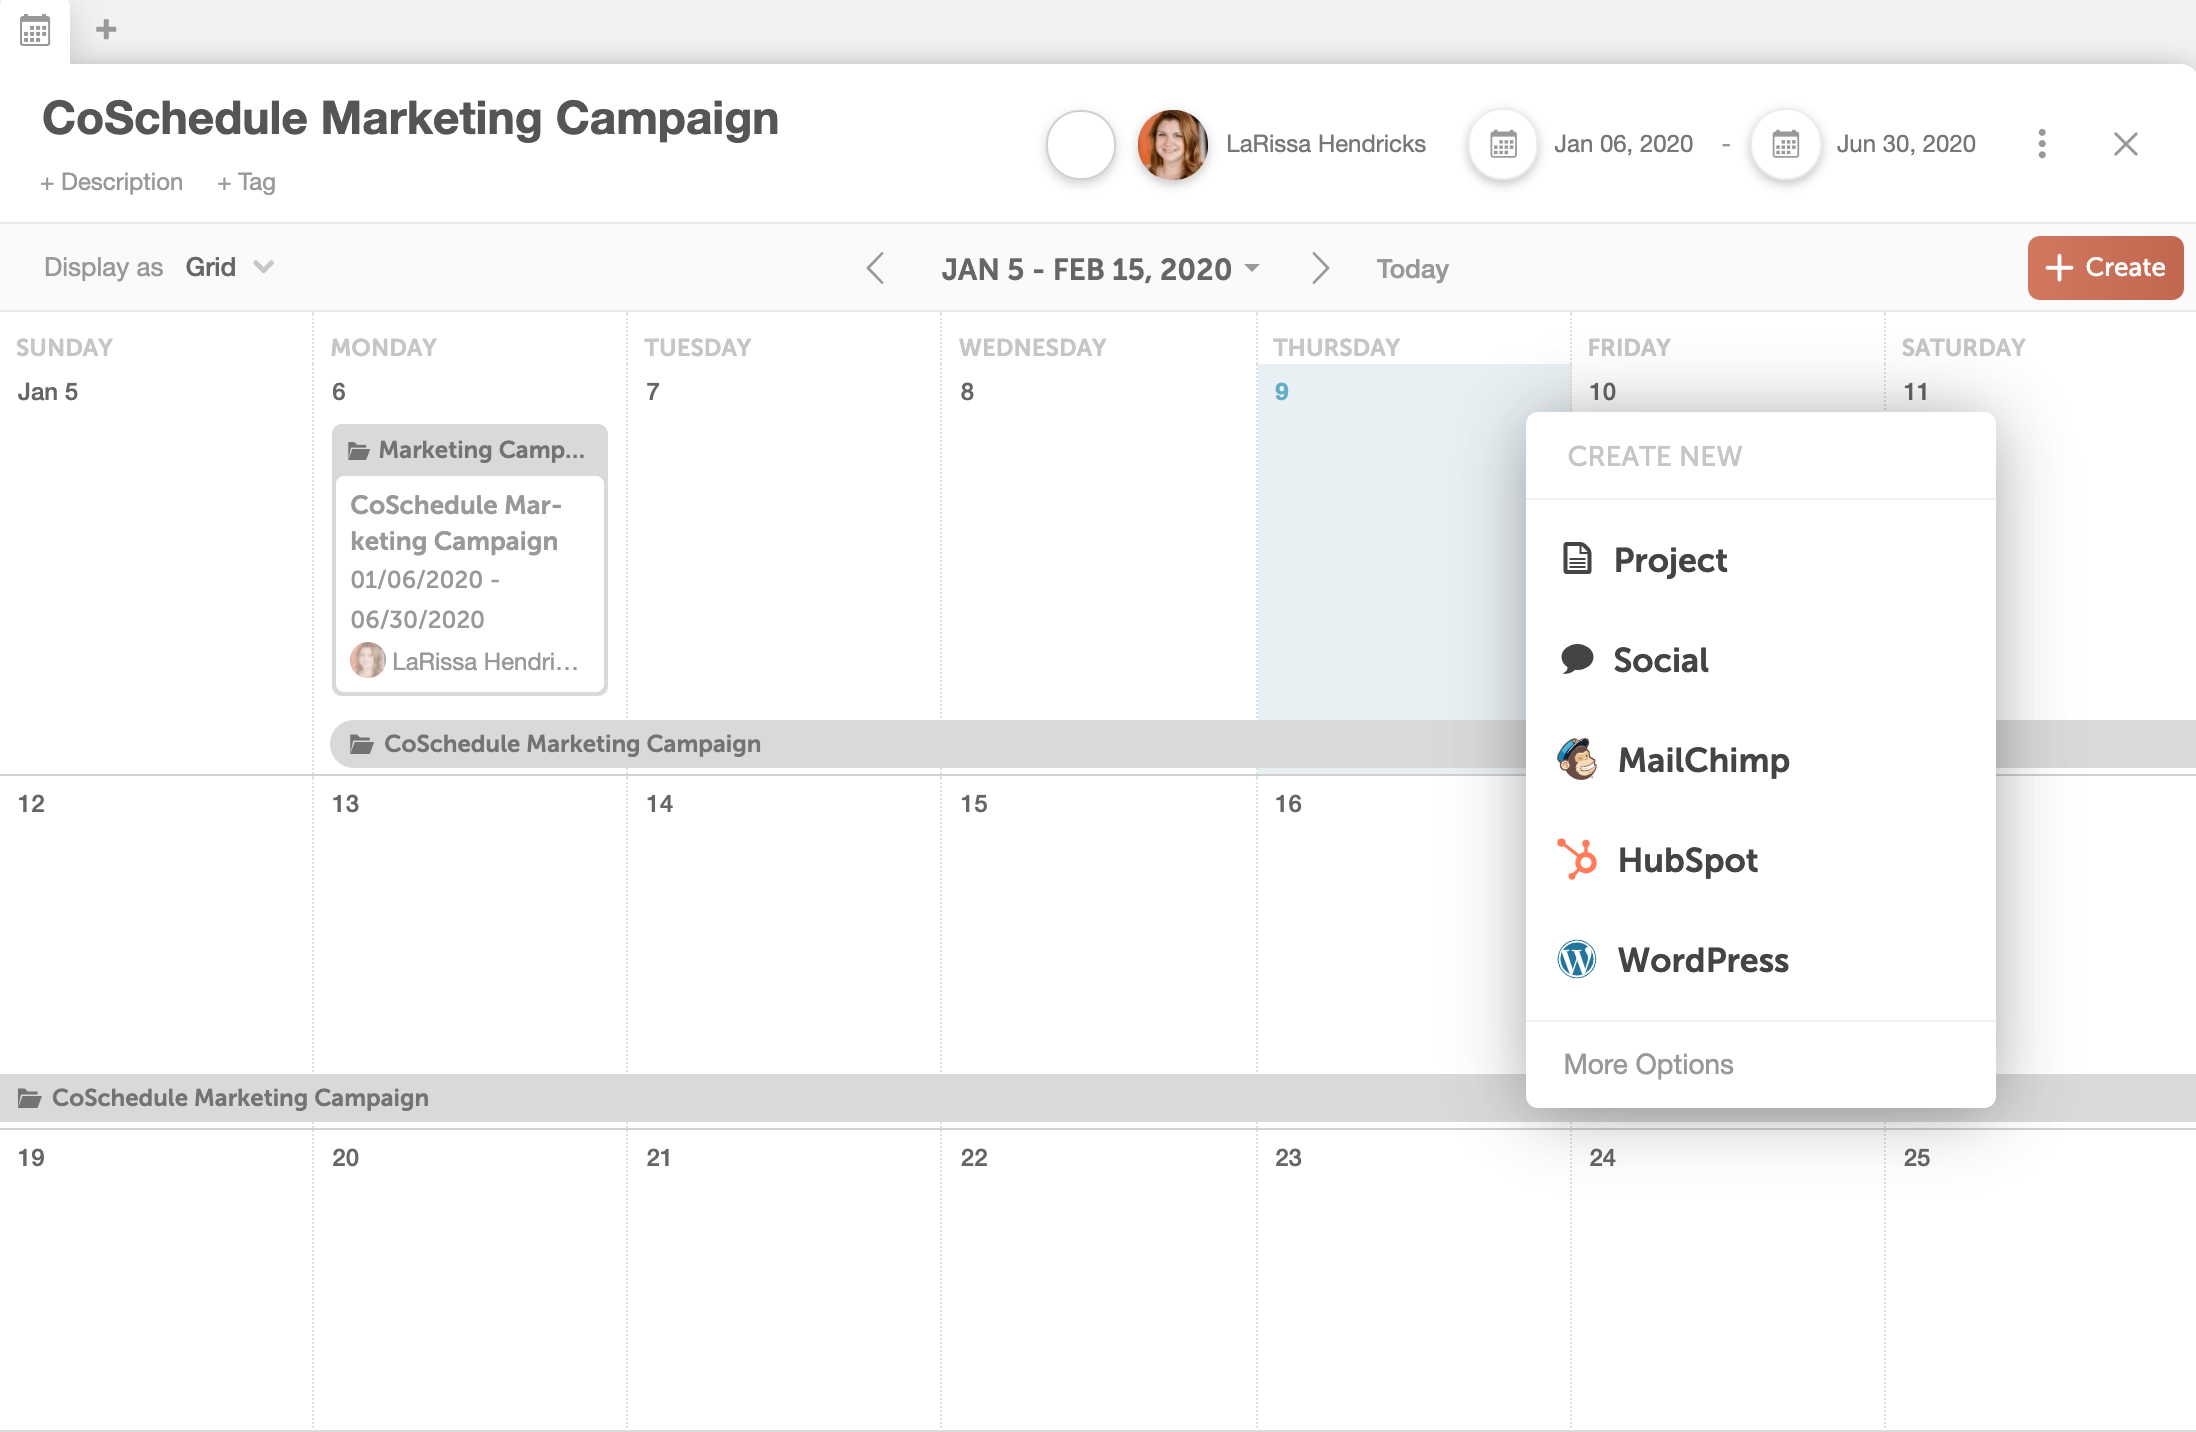 Creating A New Project In CoSchedule